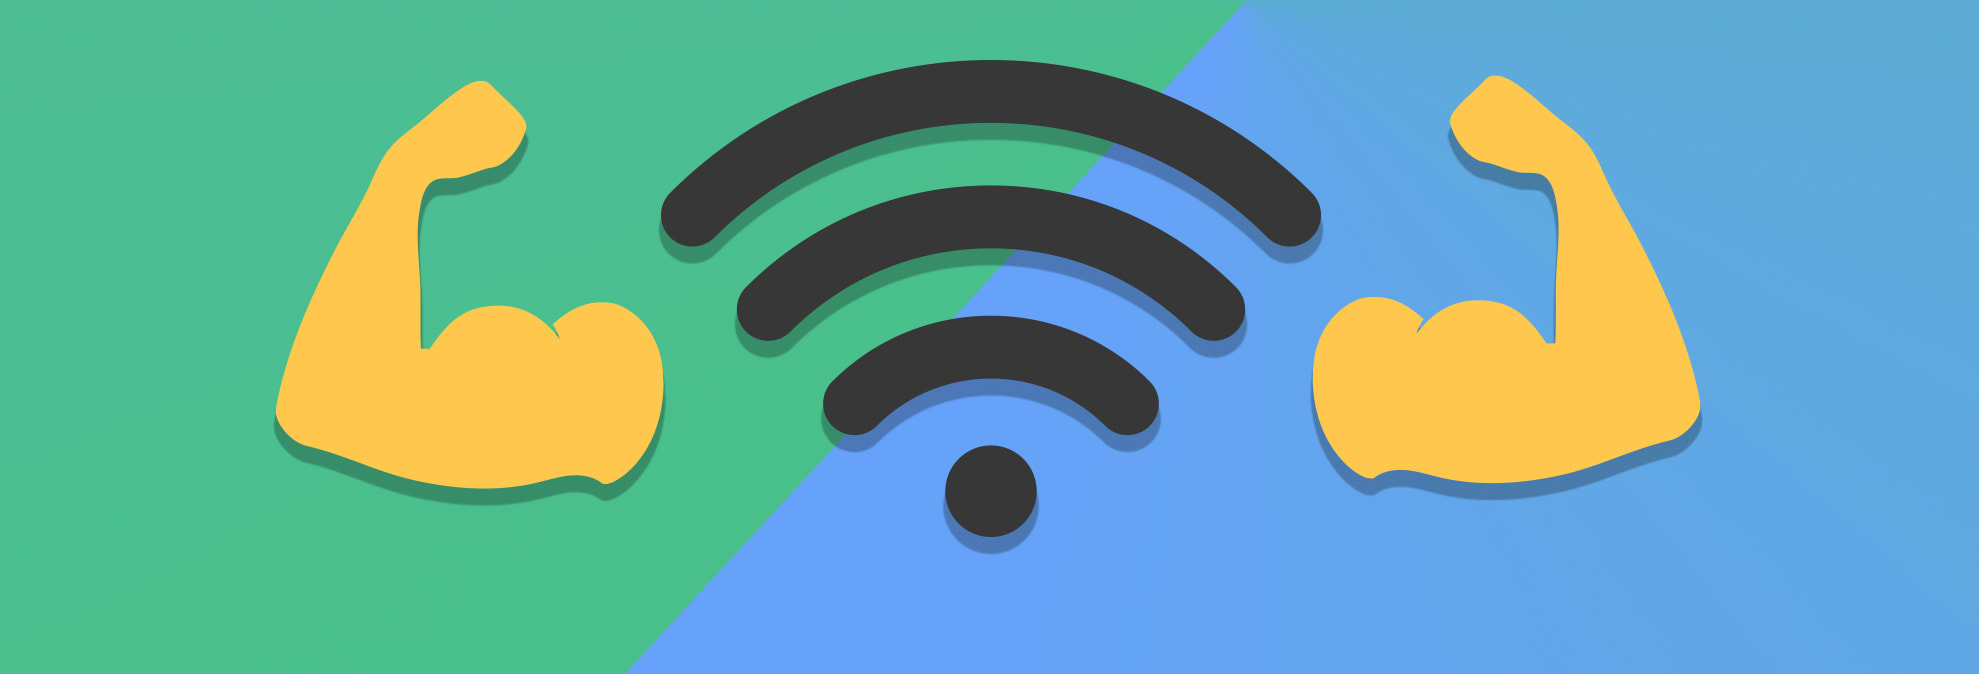 How To Get A Stronger Wifi Signal Consumer Reports